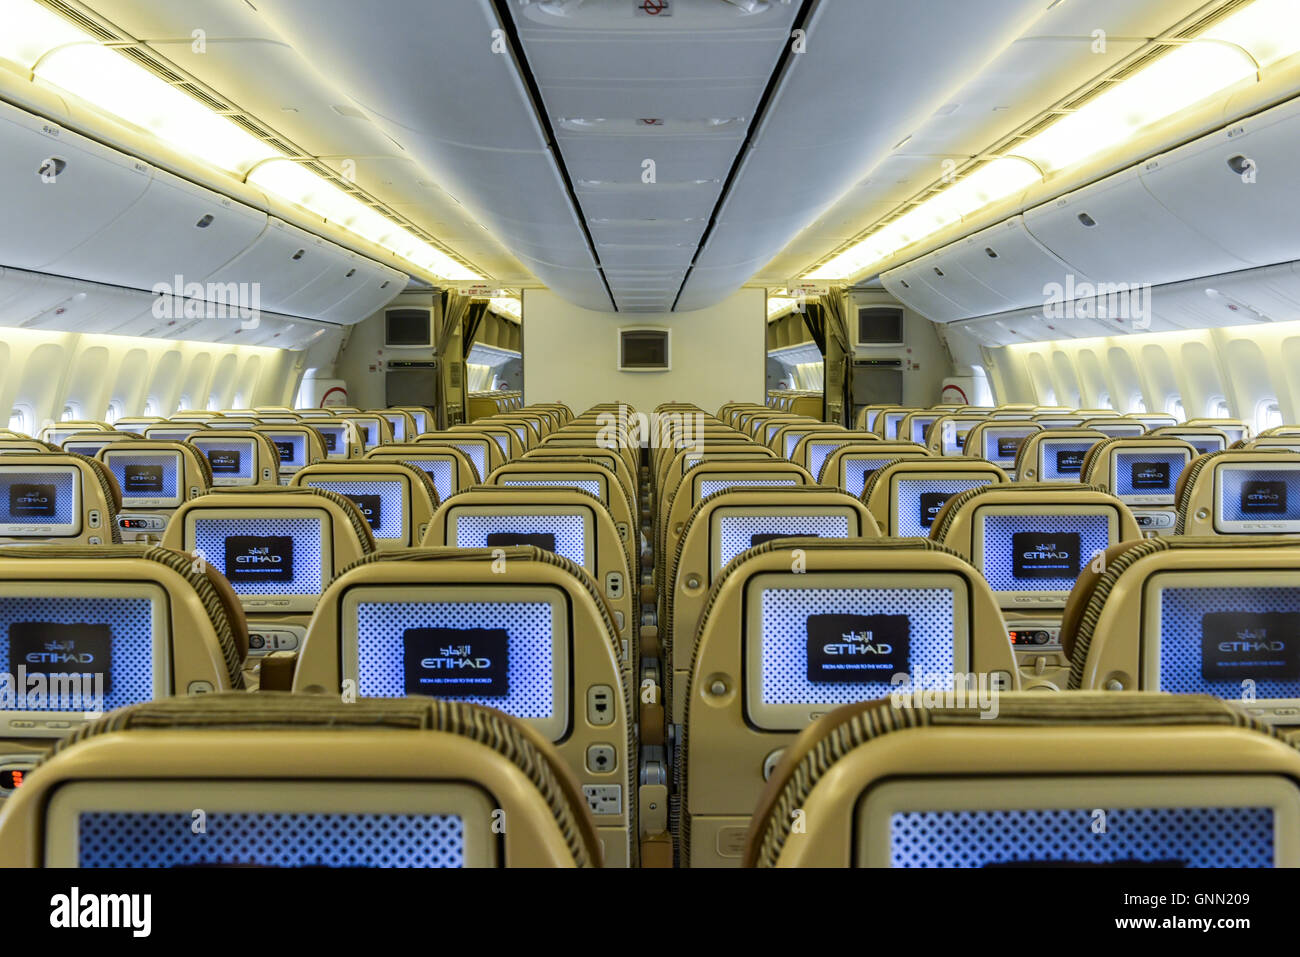 777 Interieur Intérieur D Etihad Airways Avion Boeing 777 Banque D Images Photo